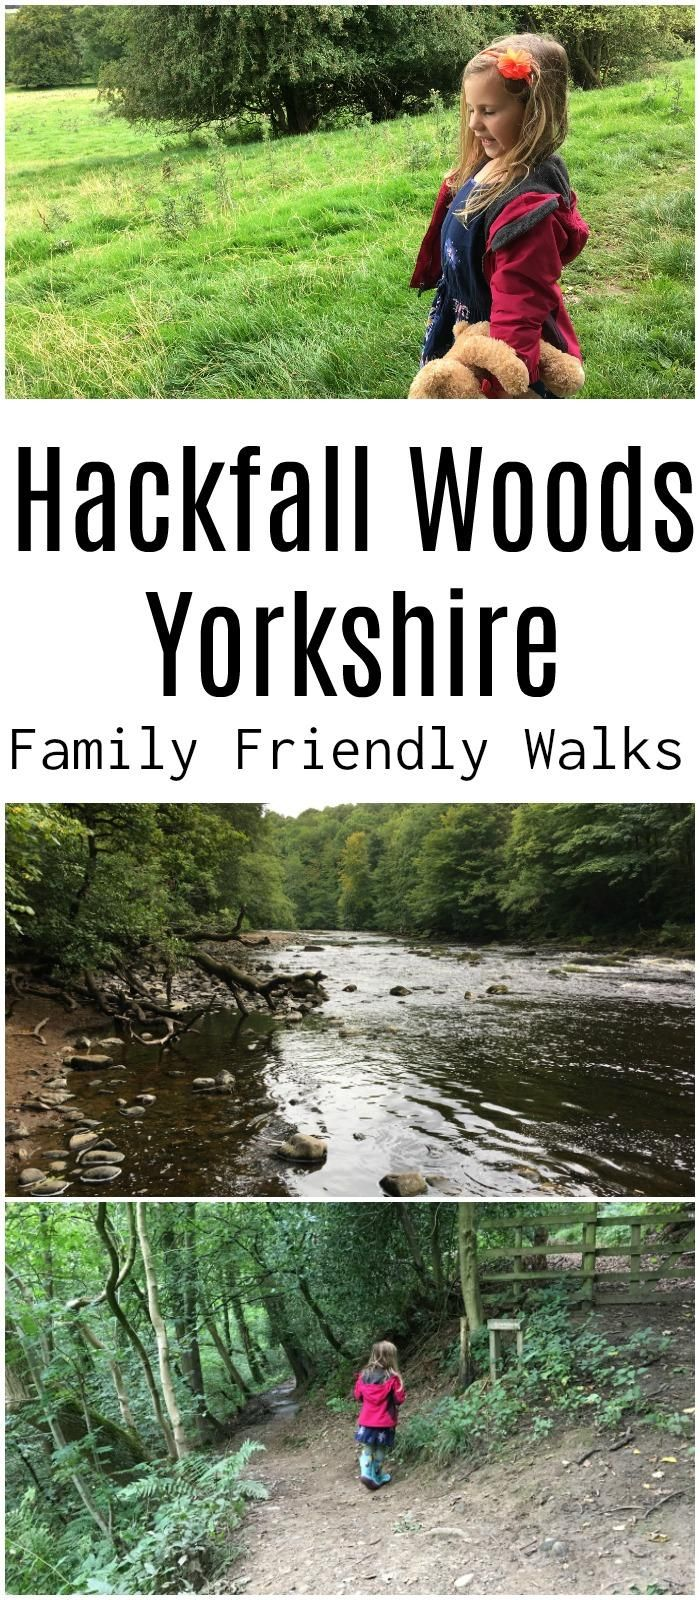 Hackfall Woods in North Yorkshire is a excellent place for family hiking. With trees, waterfalls, historic buildings an the River Ure it's a great place to introduce children to walking and the great outdoors #hackfallwoods #familytravel #outdoors #uk #yorkshire